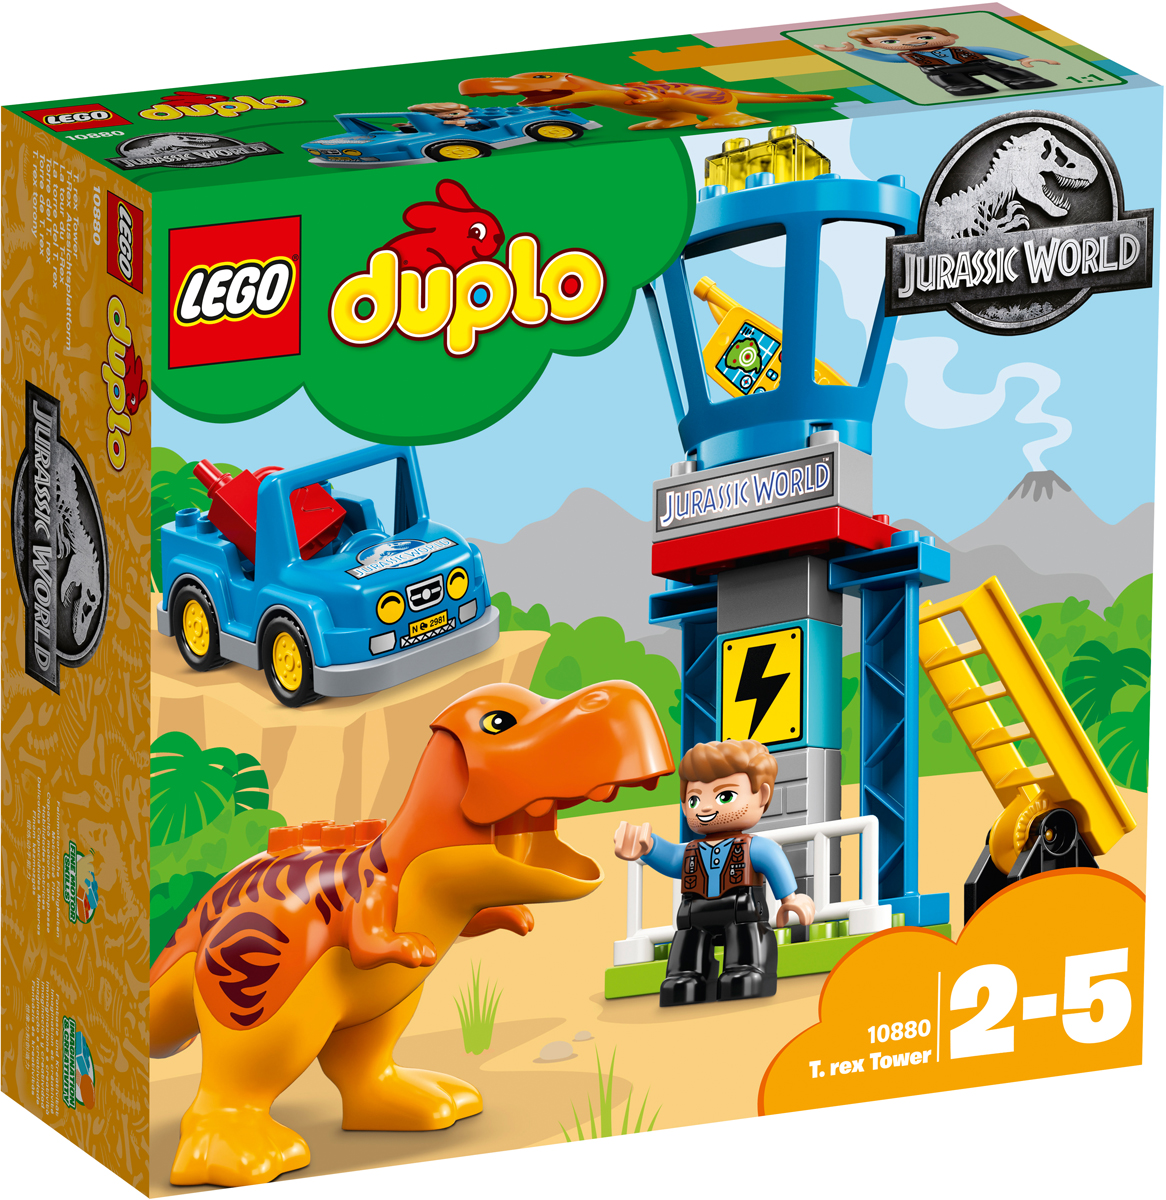 LEGO DUPLO Jurassic World Конструктор Башня Ти-Рекса